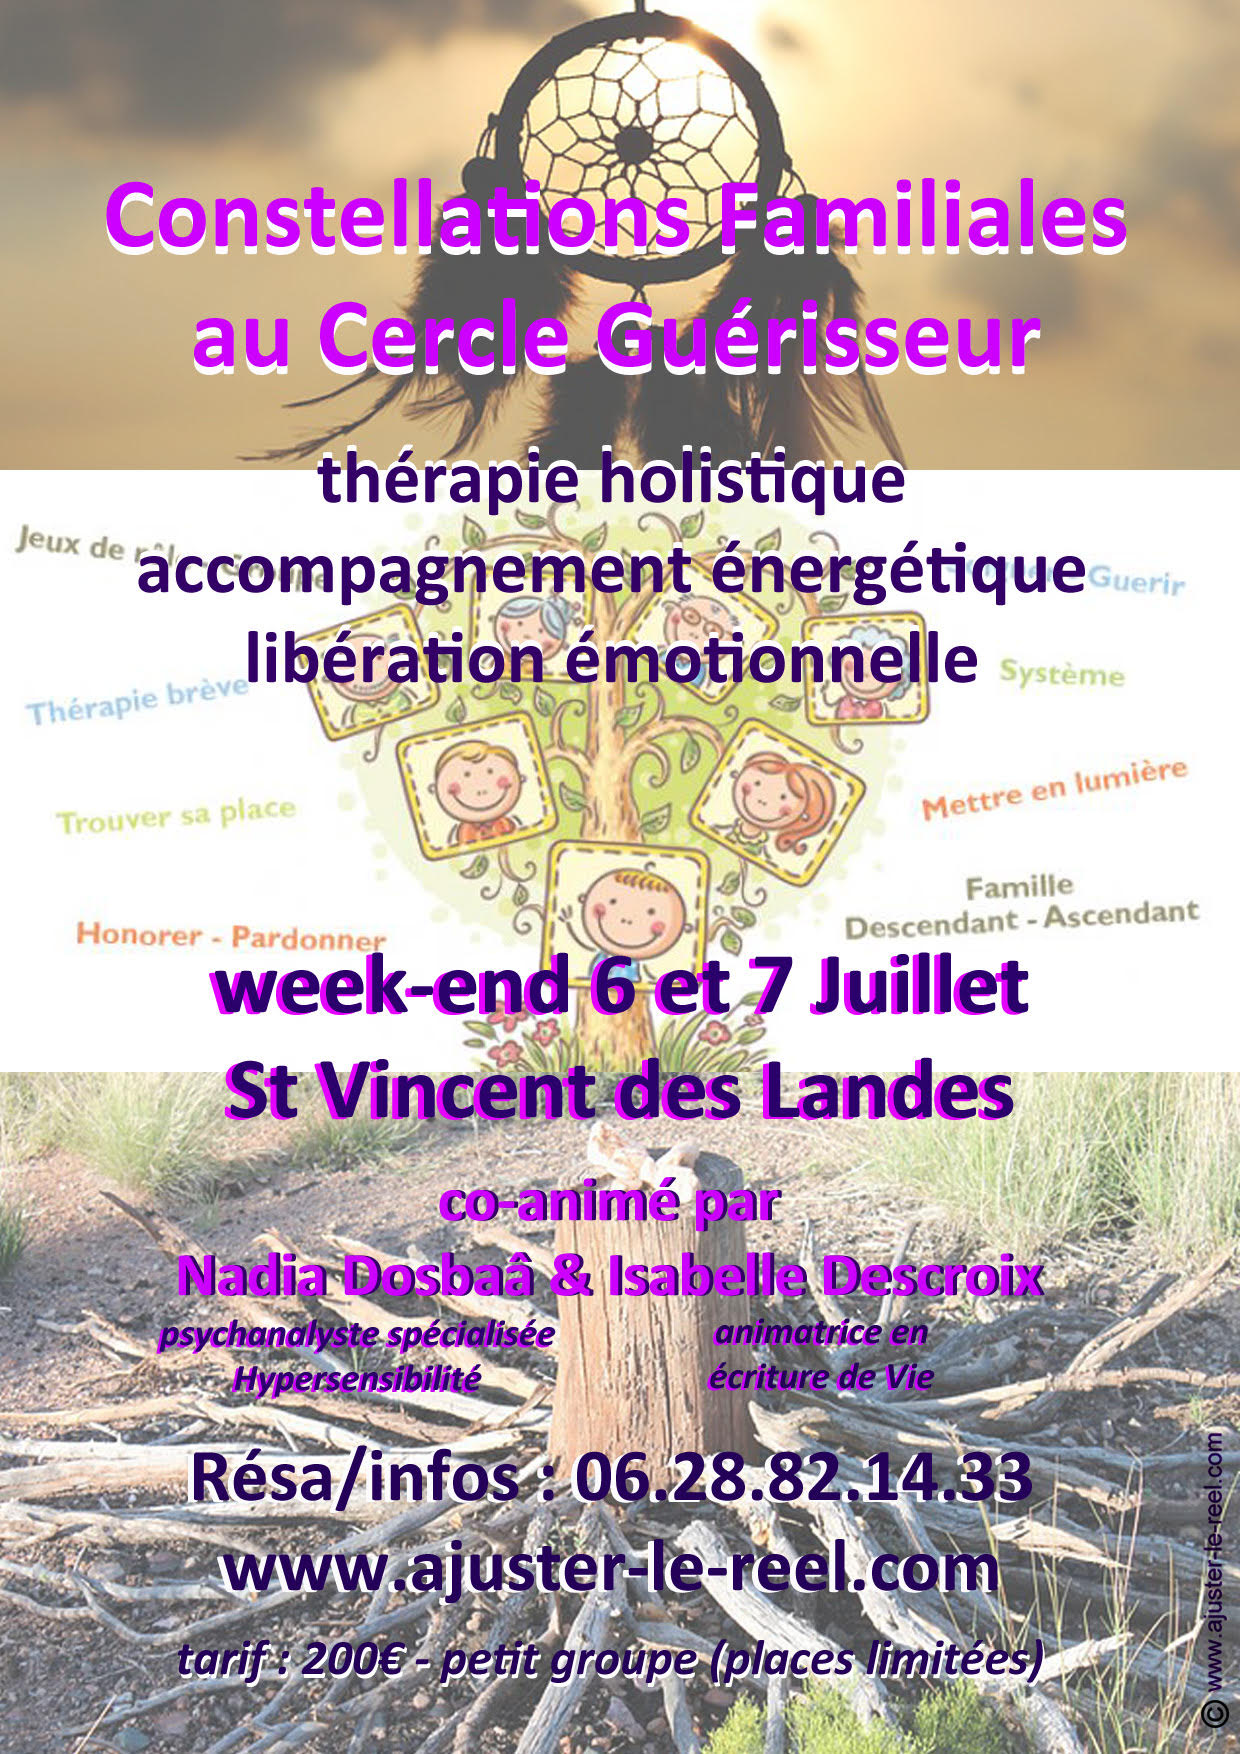 Constellations Familiales Saint vincent des landes